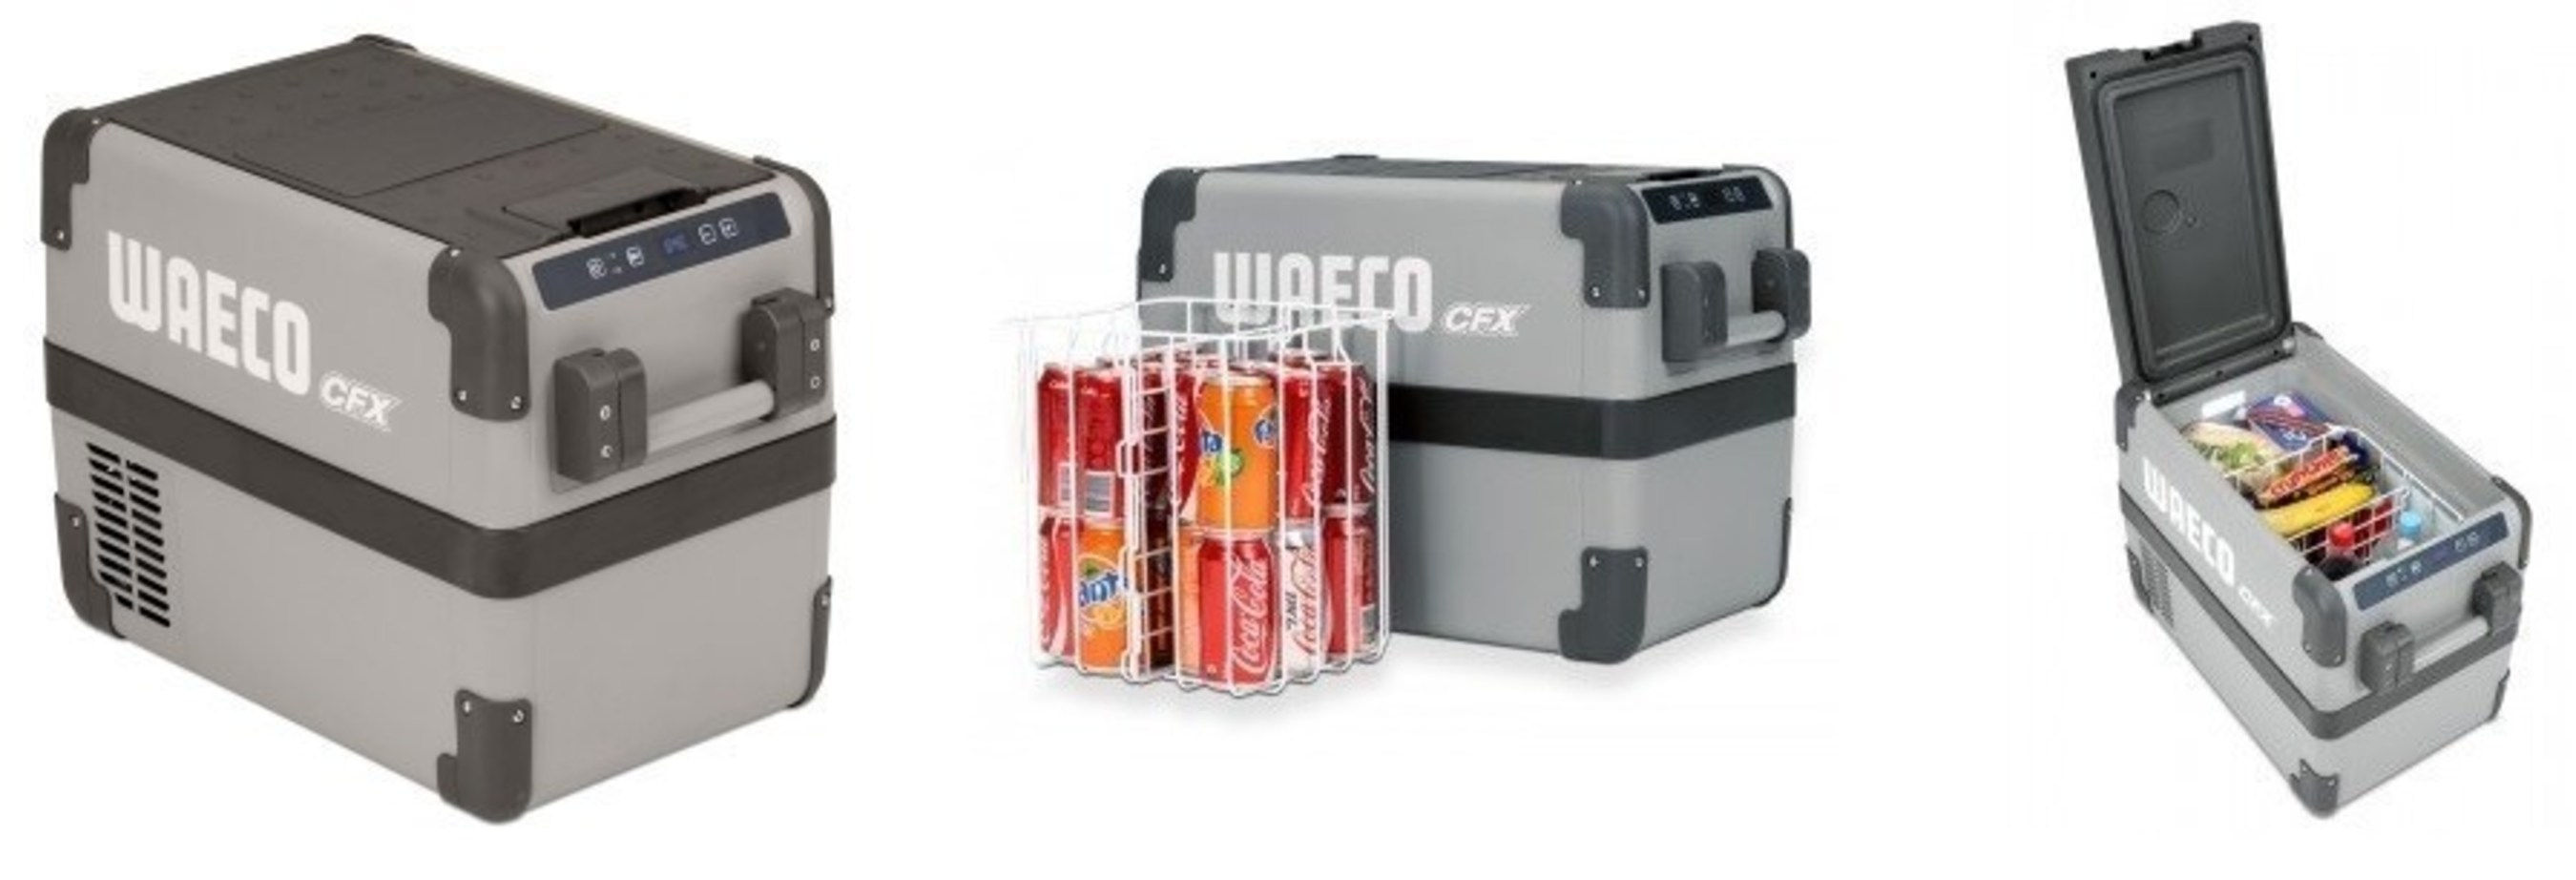 12 Volt Technology all set to launch Waeco CFX28 Fridge Freezer for purchase in January